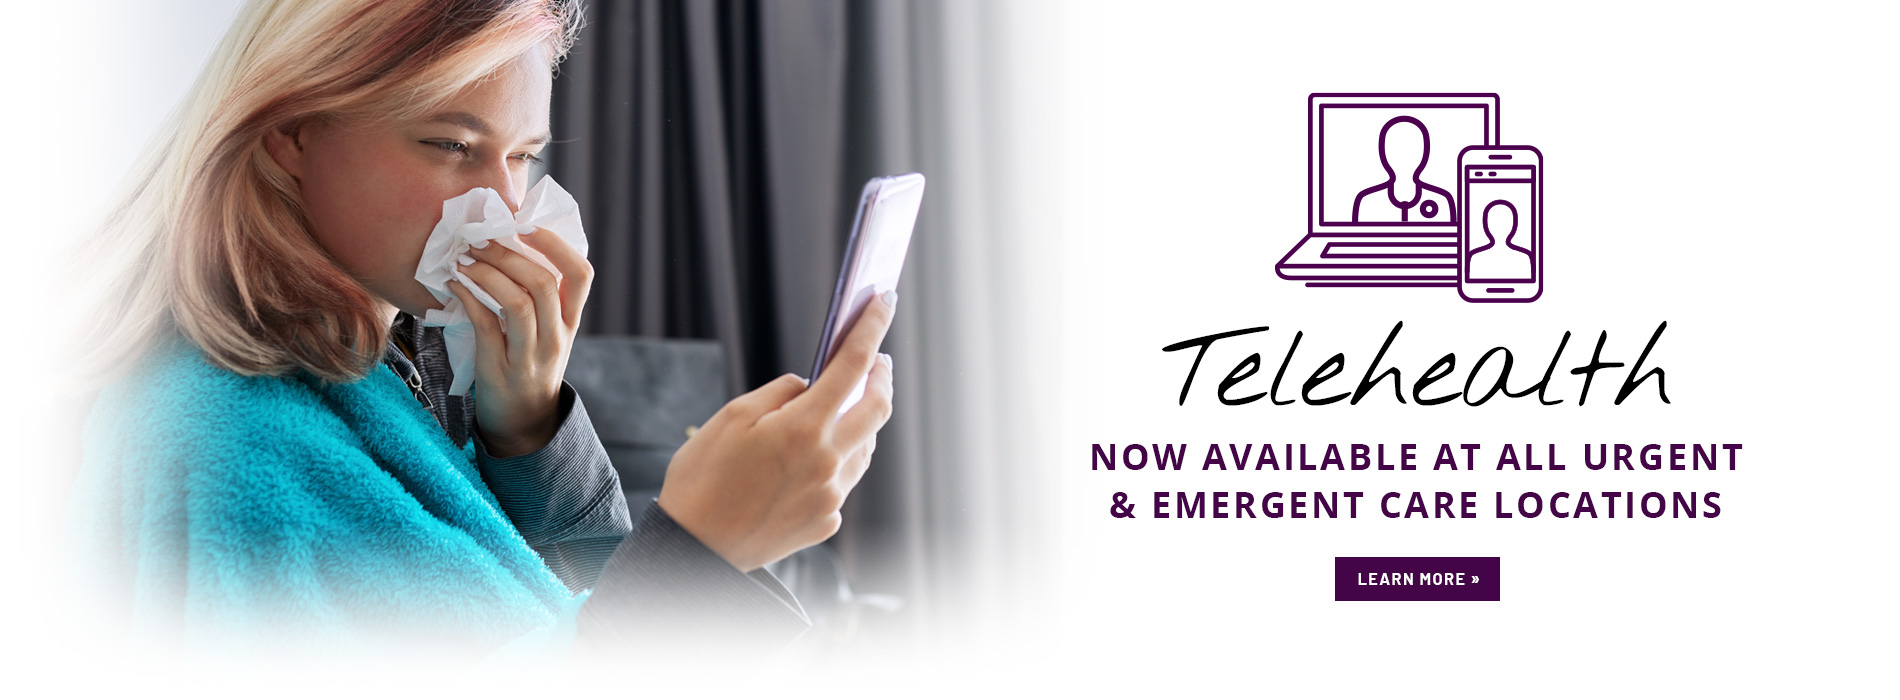 Telehealth available at all urgent and emergent care locations